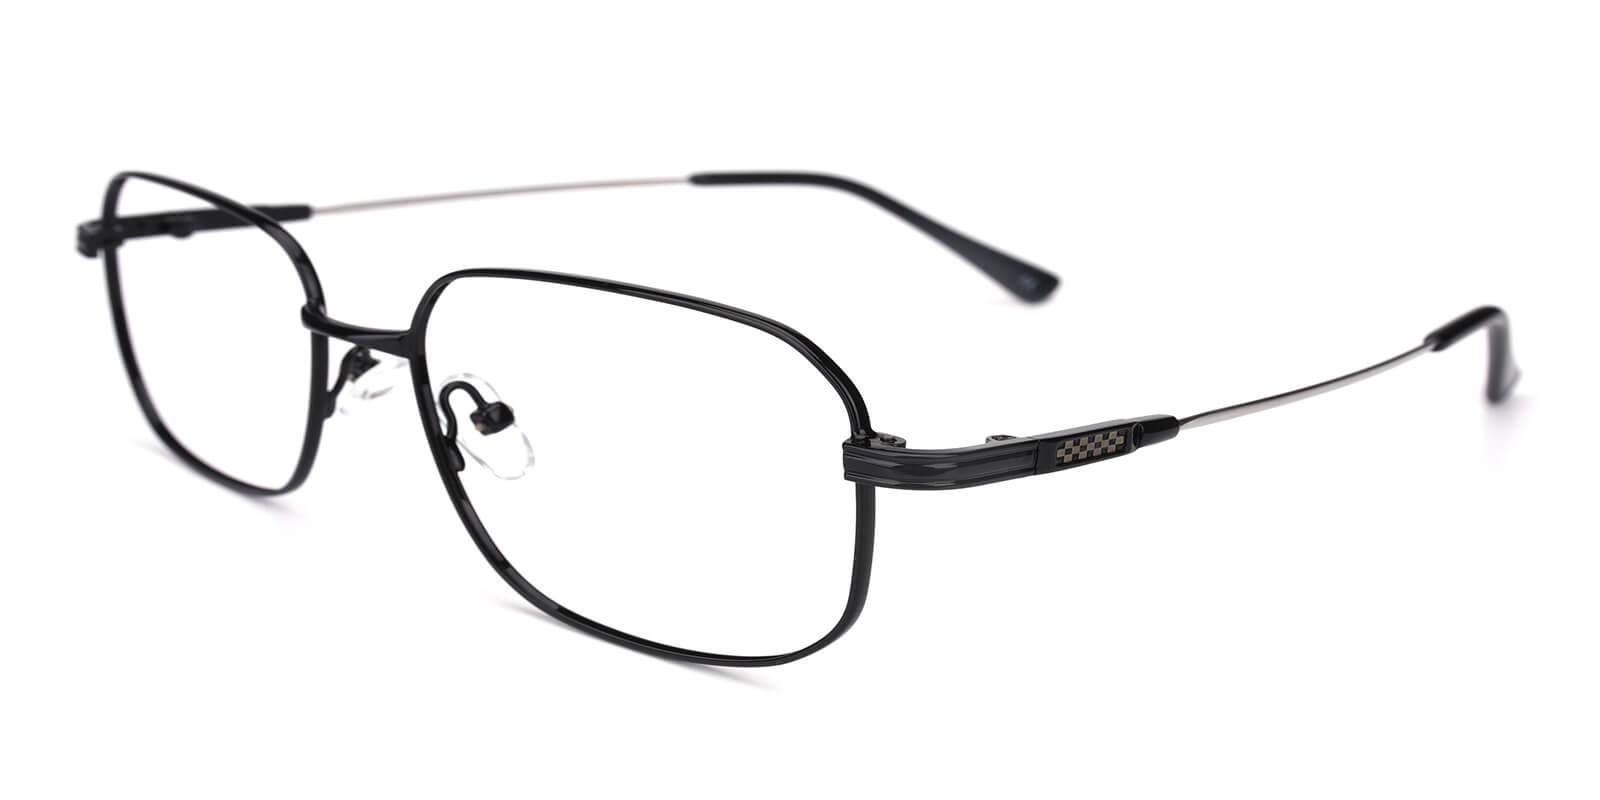 Weston-Black-Square-Metal-Eyeglasses-additional1